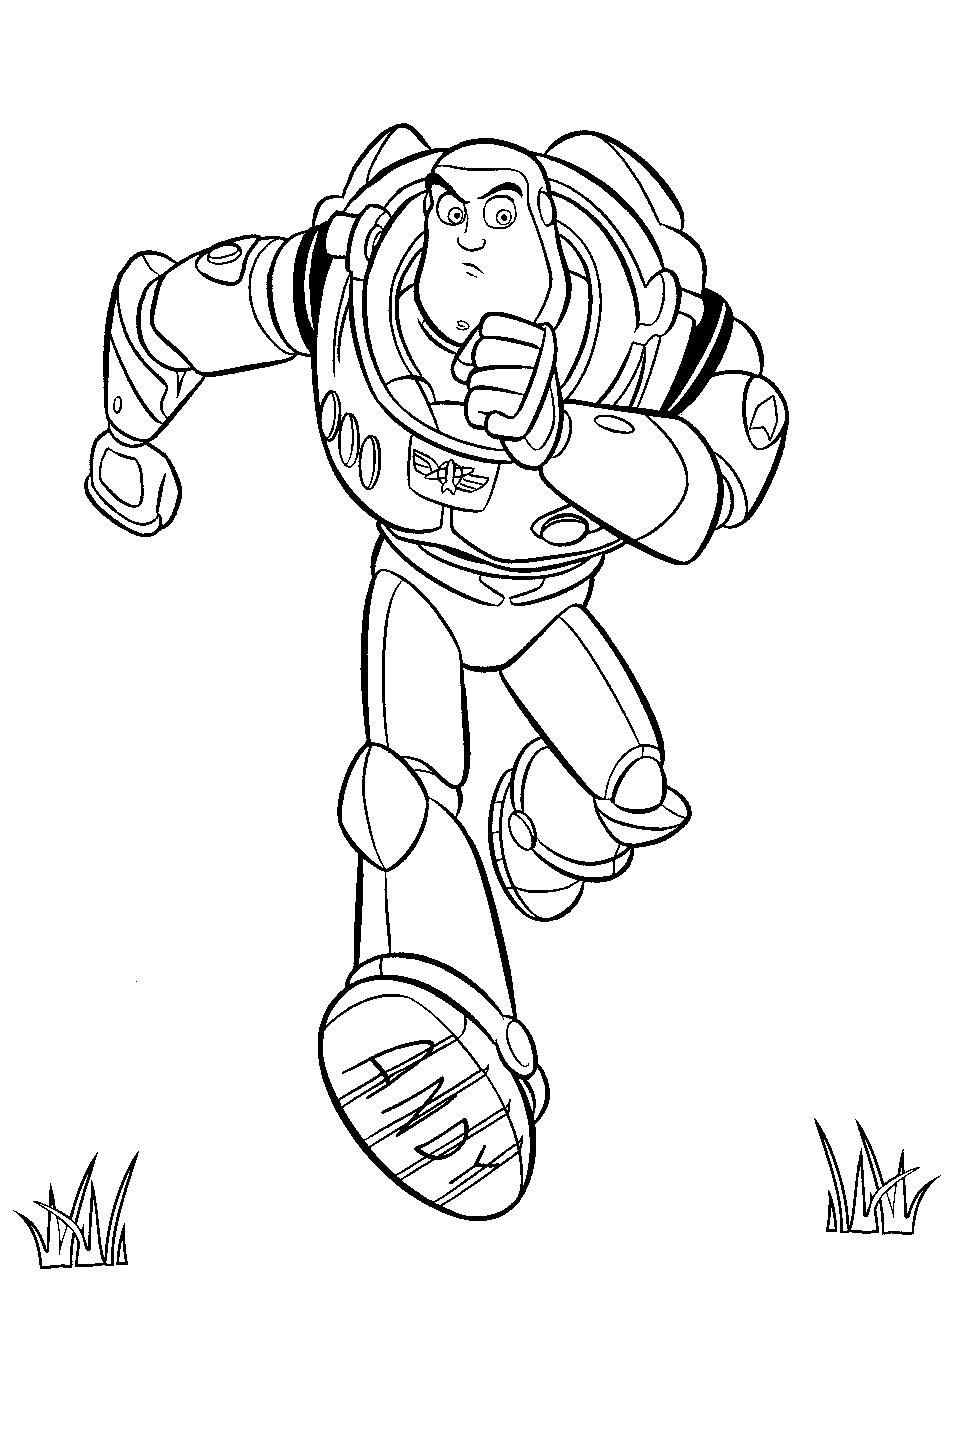 Buzz Lightyear from Toy Story coloring page Cumpleaos Ignacio